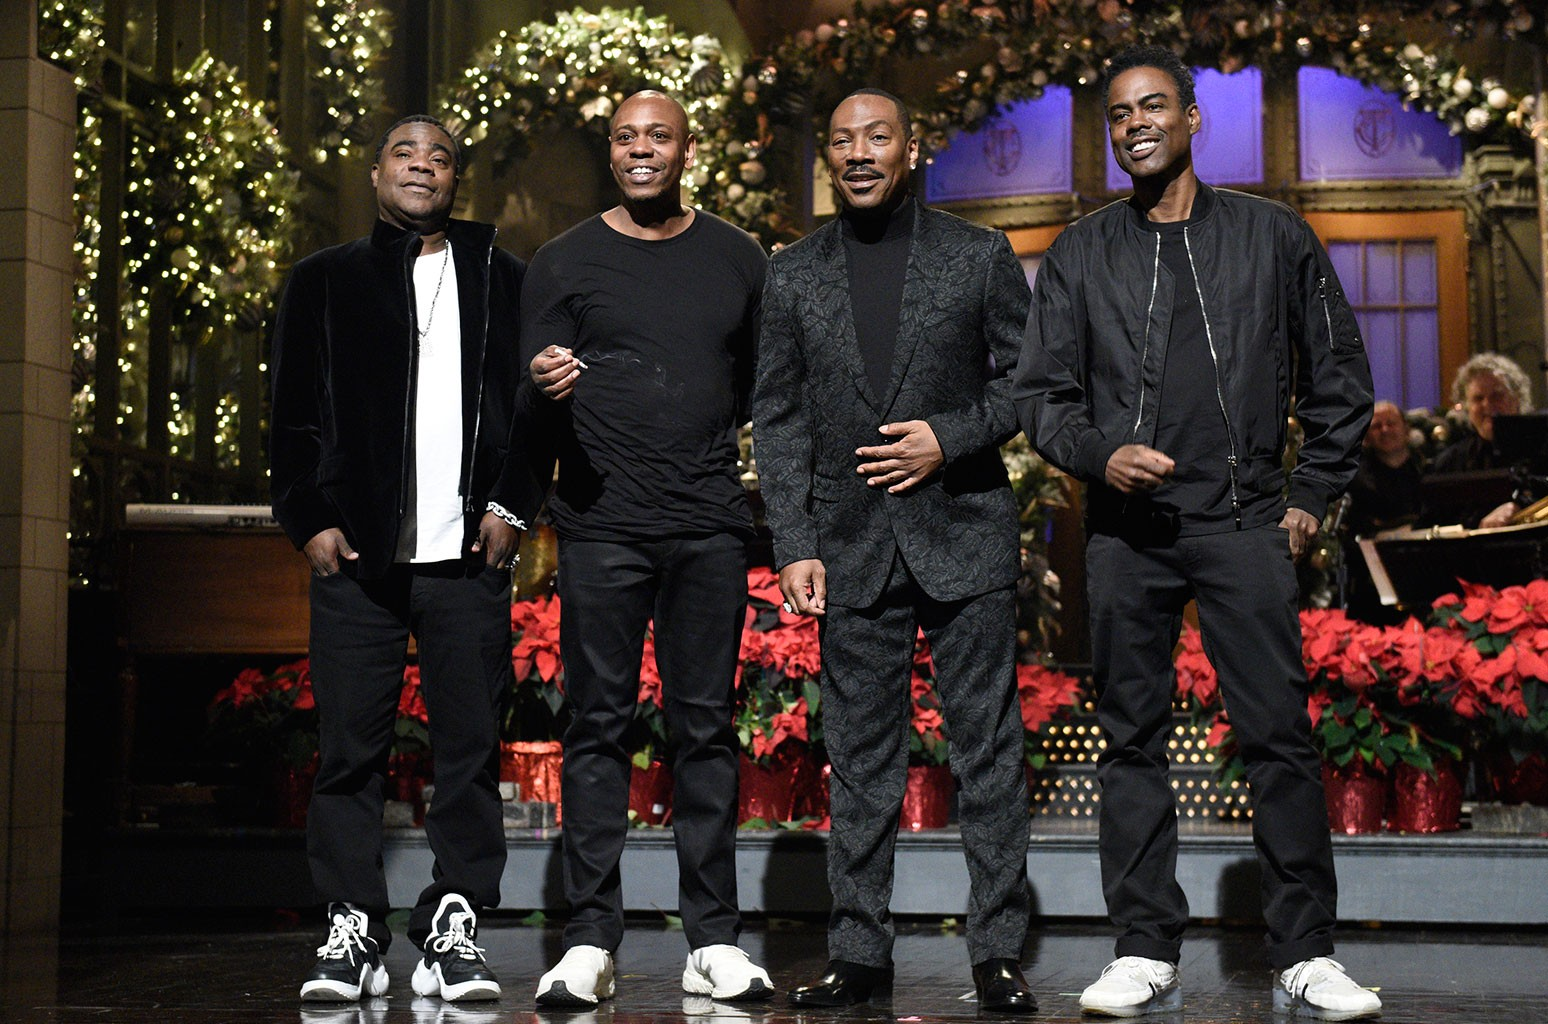 Tracy Morgan, Dave Chappelle, host Eddie Murphy, and Chris Rock